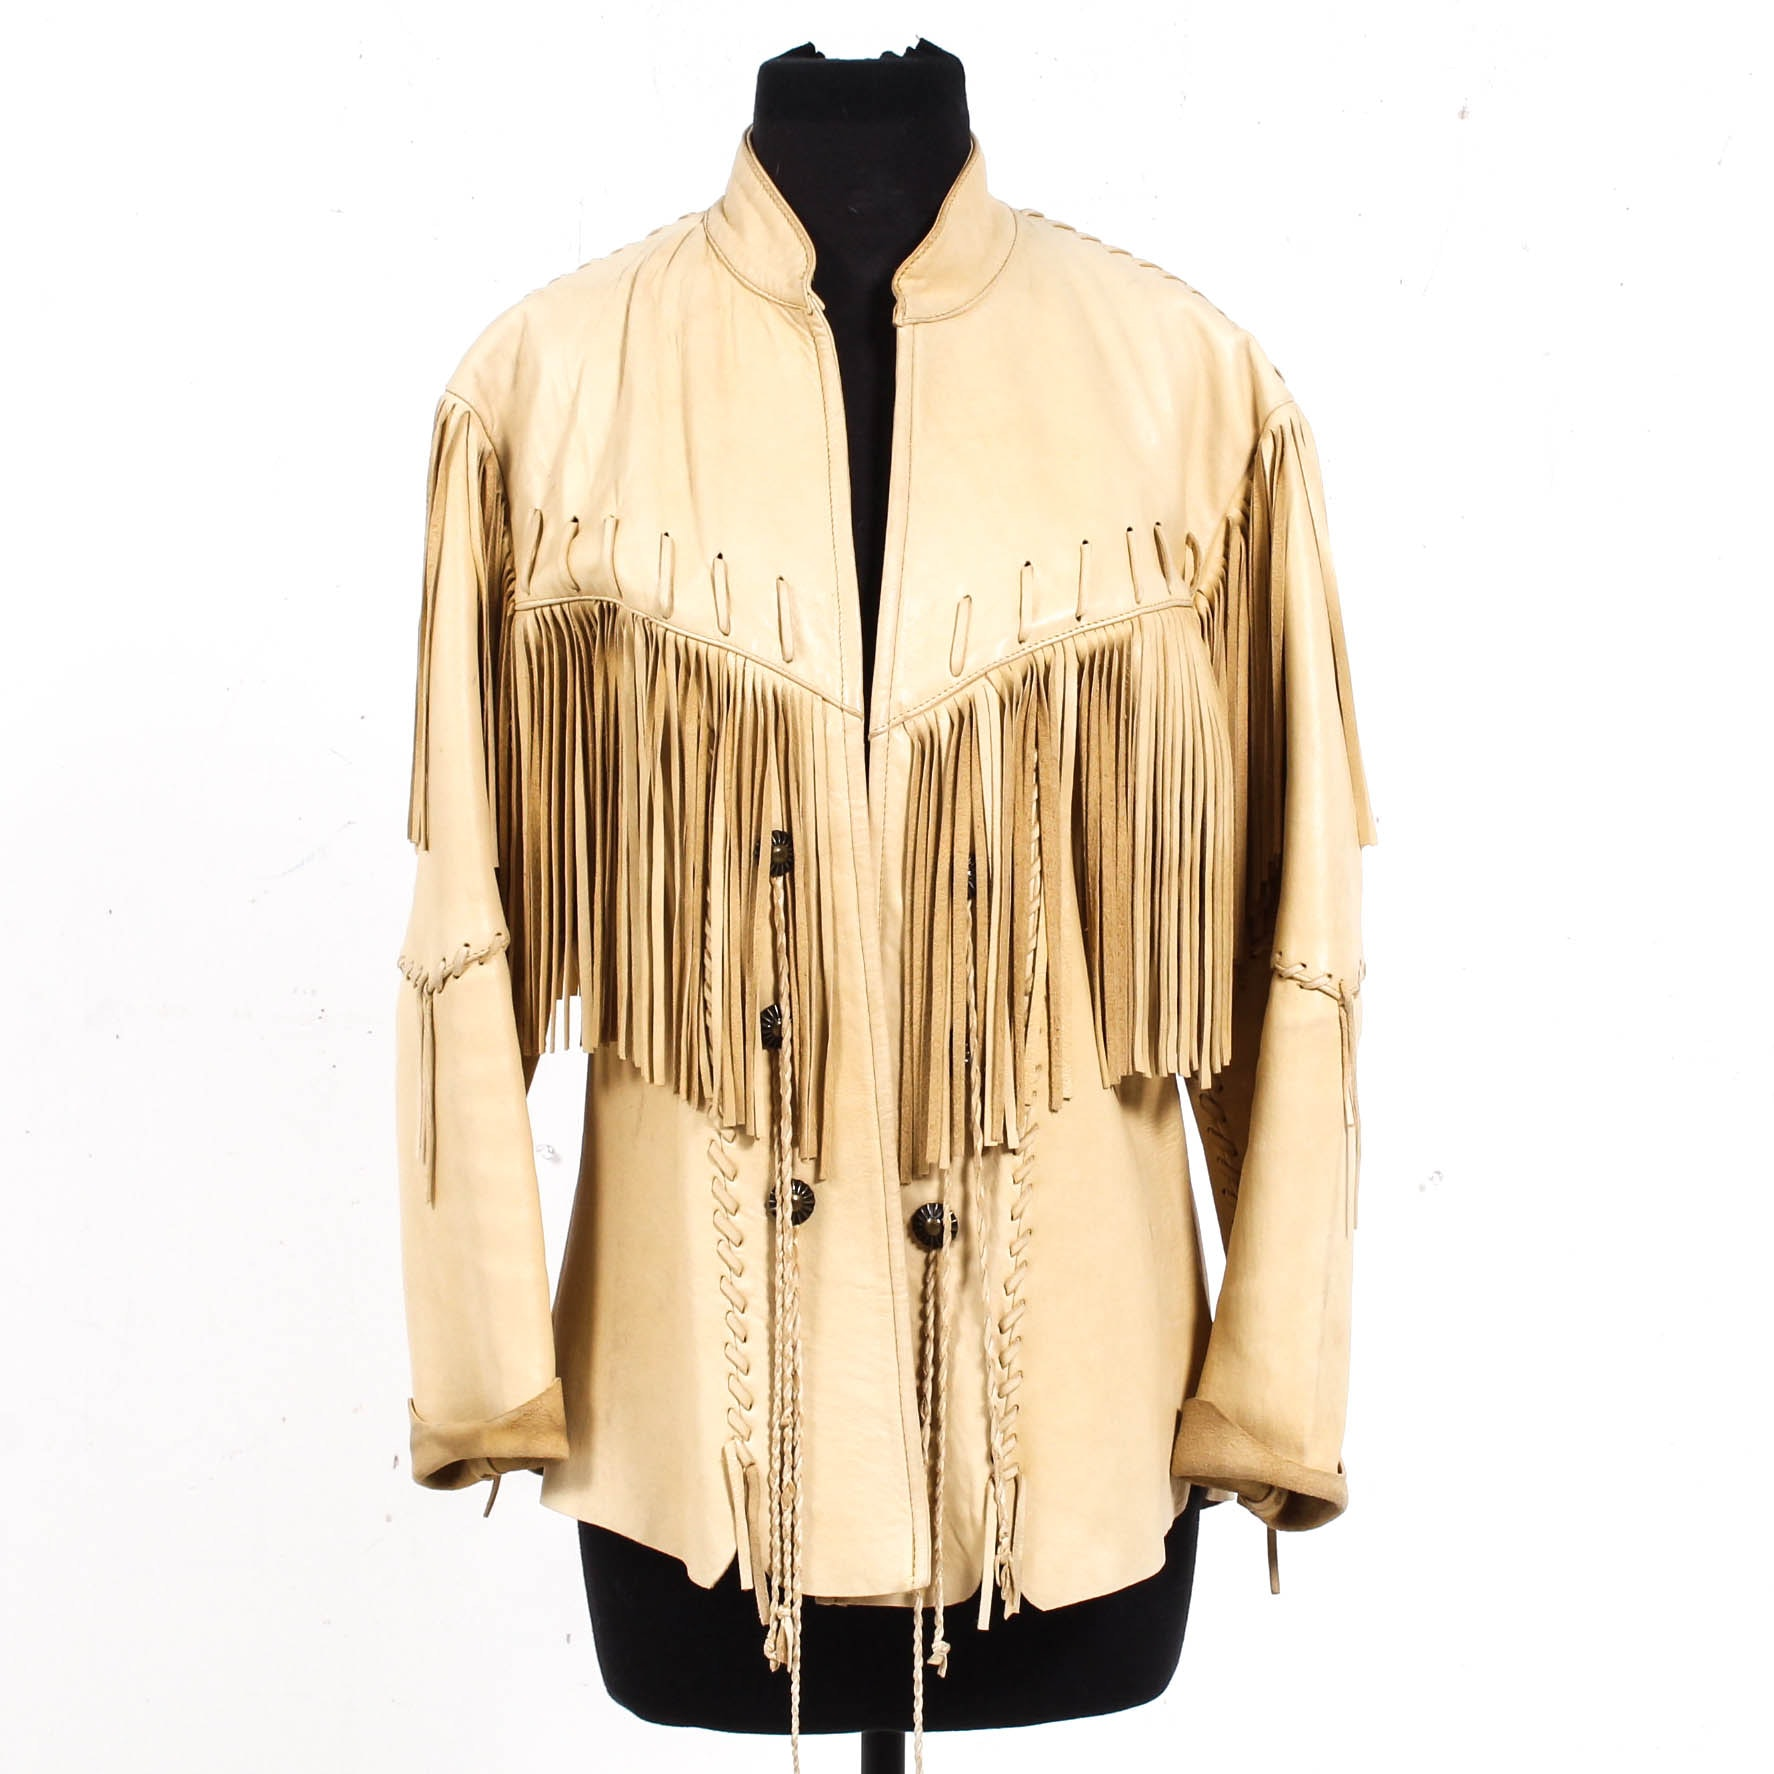 Sedona Leather Fringe Jacket